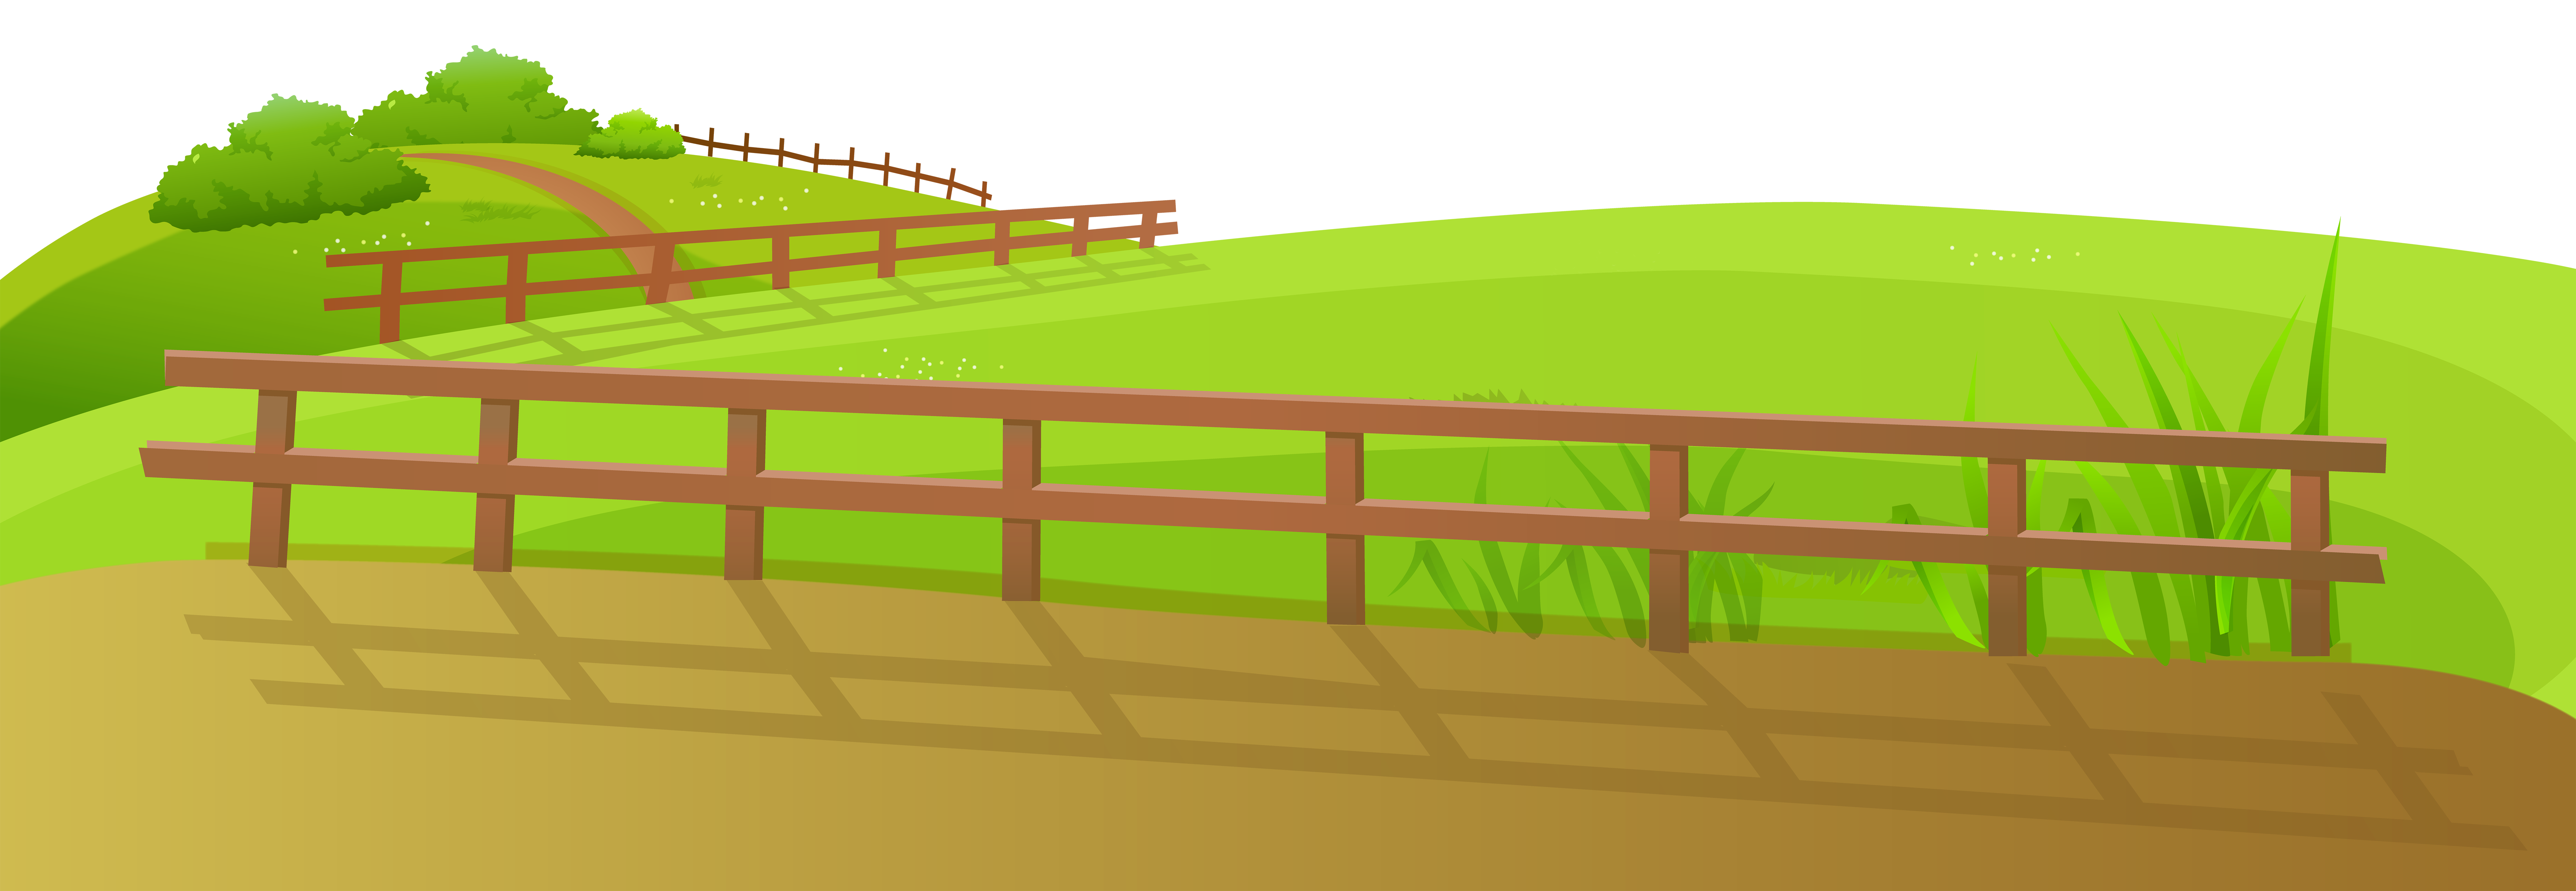 Ground clipart Clip Image Grass View Fence